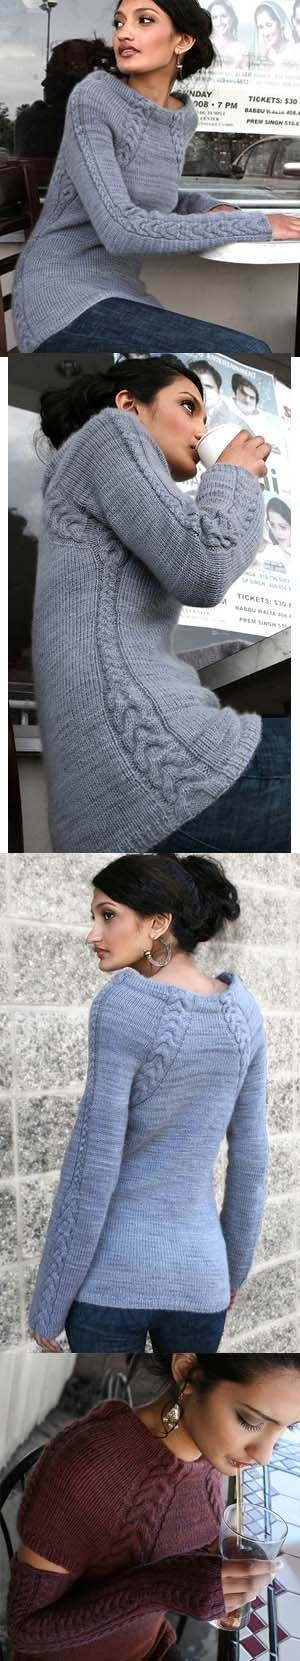 Source Susan Padilla Oh this has my name written ALL over it!!! - Silken Scabbard Knitting Pattern